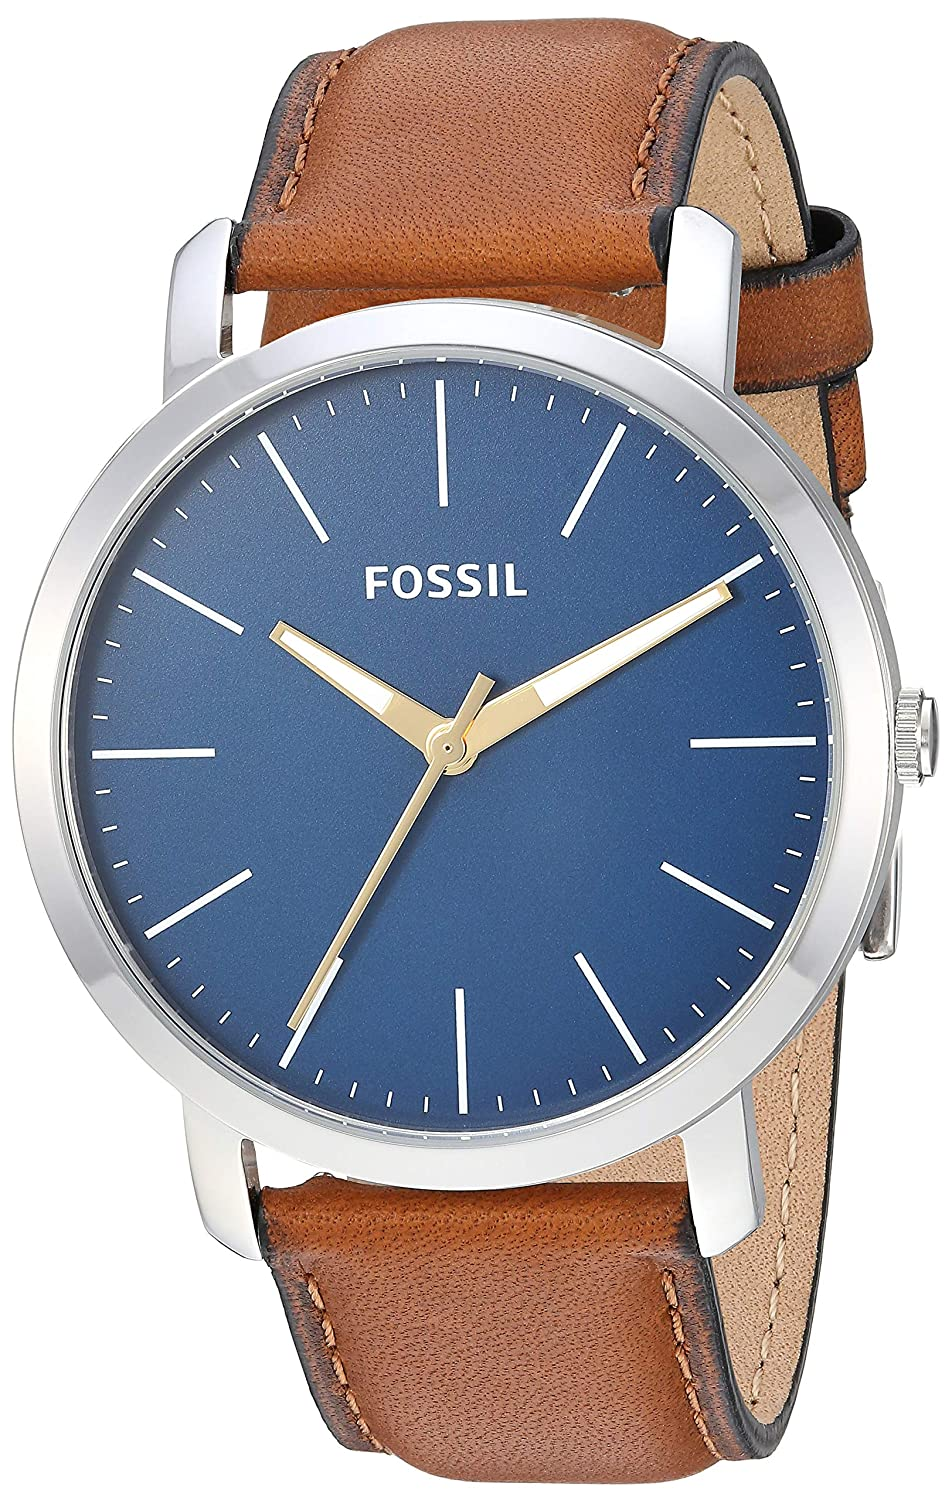 Top 12 Most Popular and Best Watches Brands in India (Aug 2019)